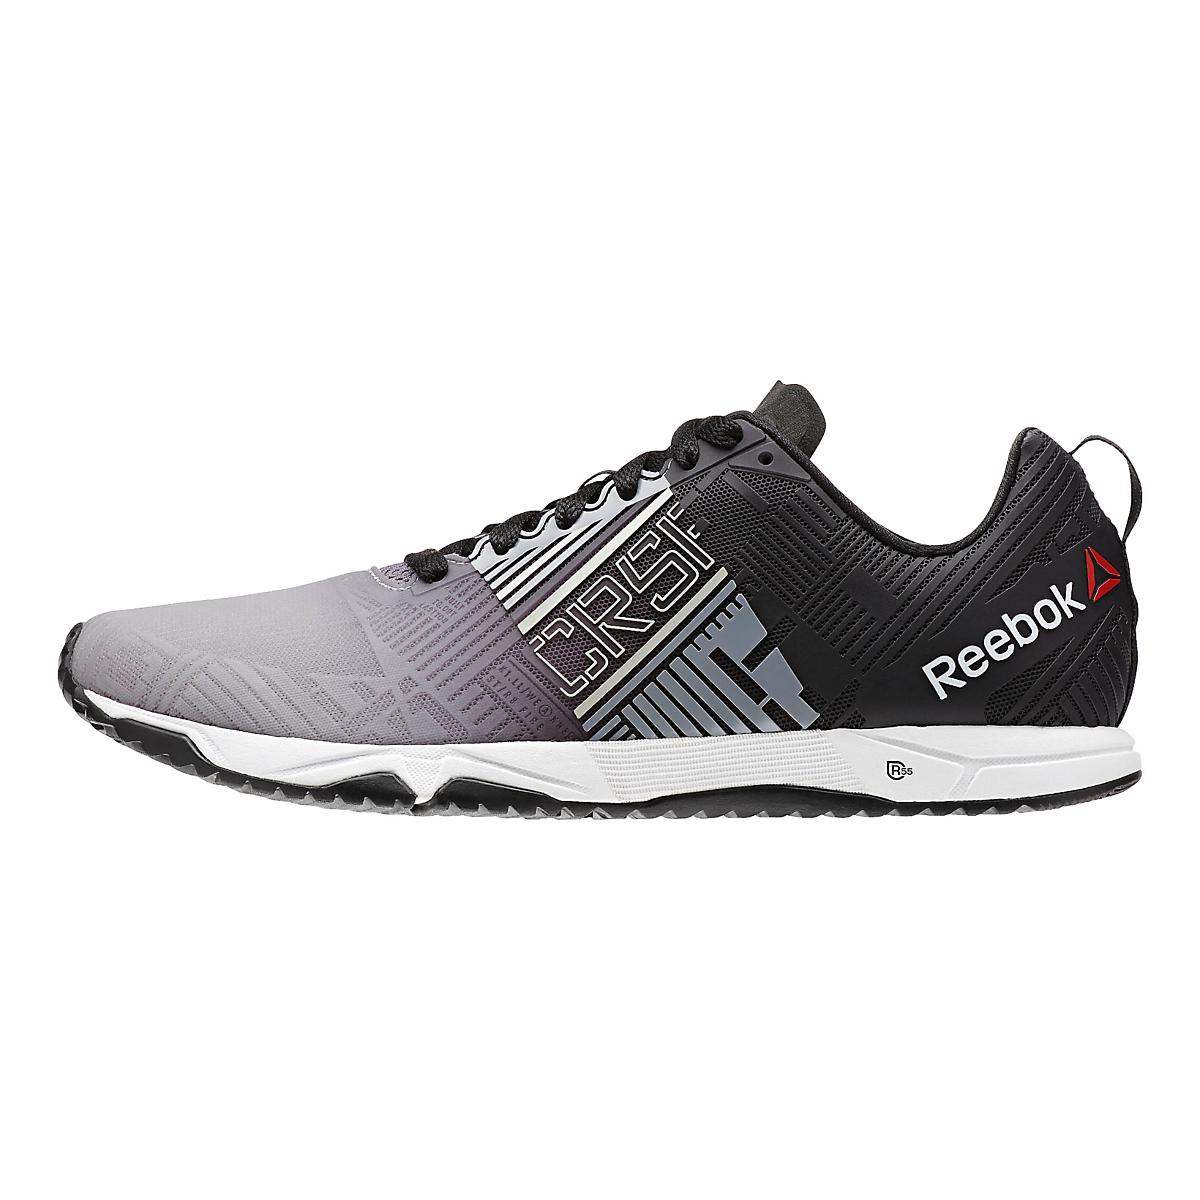 Mens Reebok CrossFit Sprint 2.0 Cross Training Shoe at Road Runner Sports 698e57f86